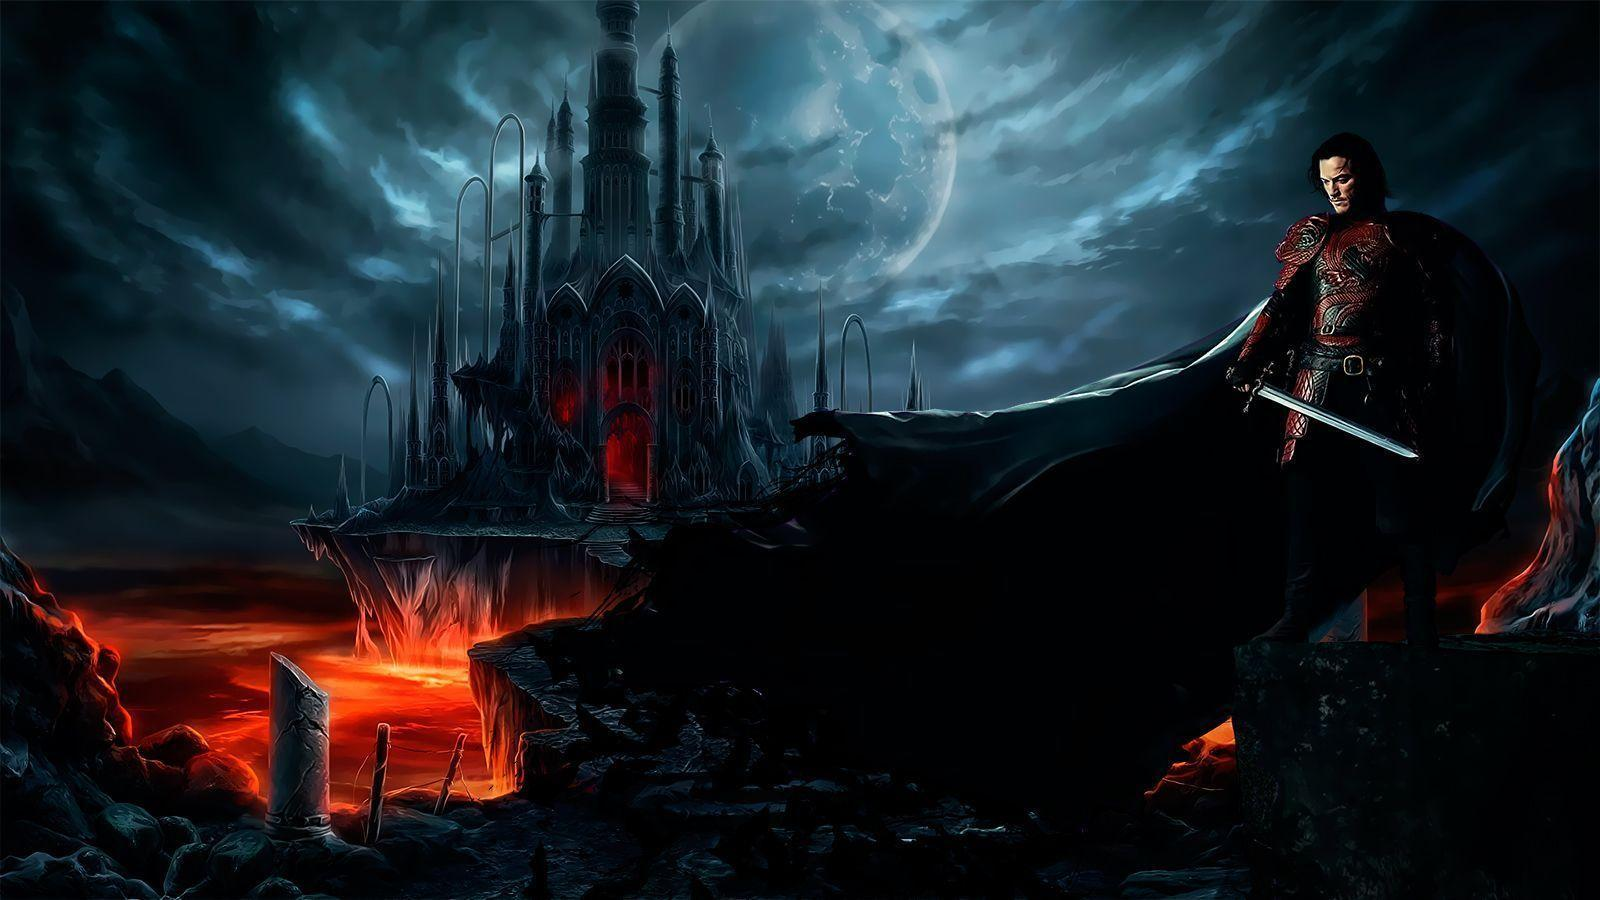 dracula hd wallpapers - photo #2